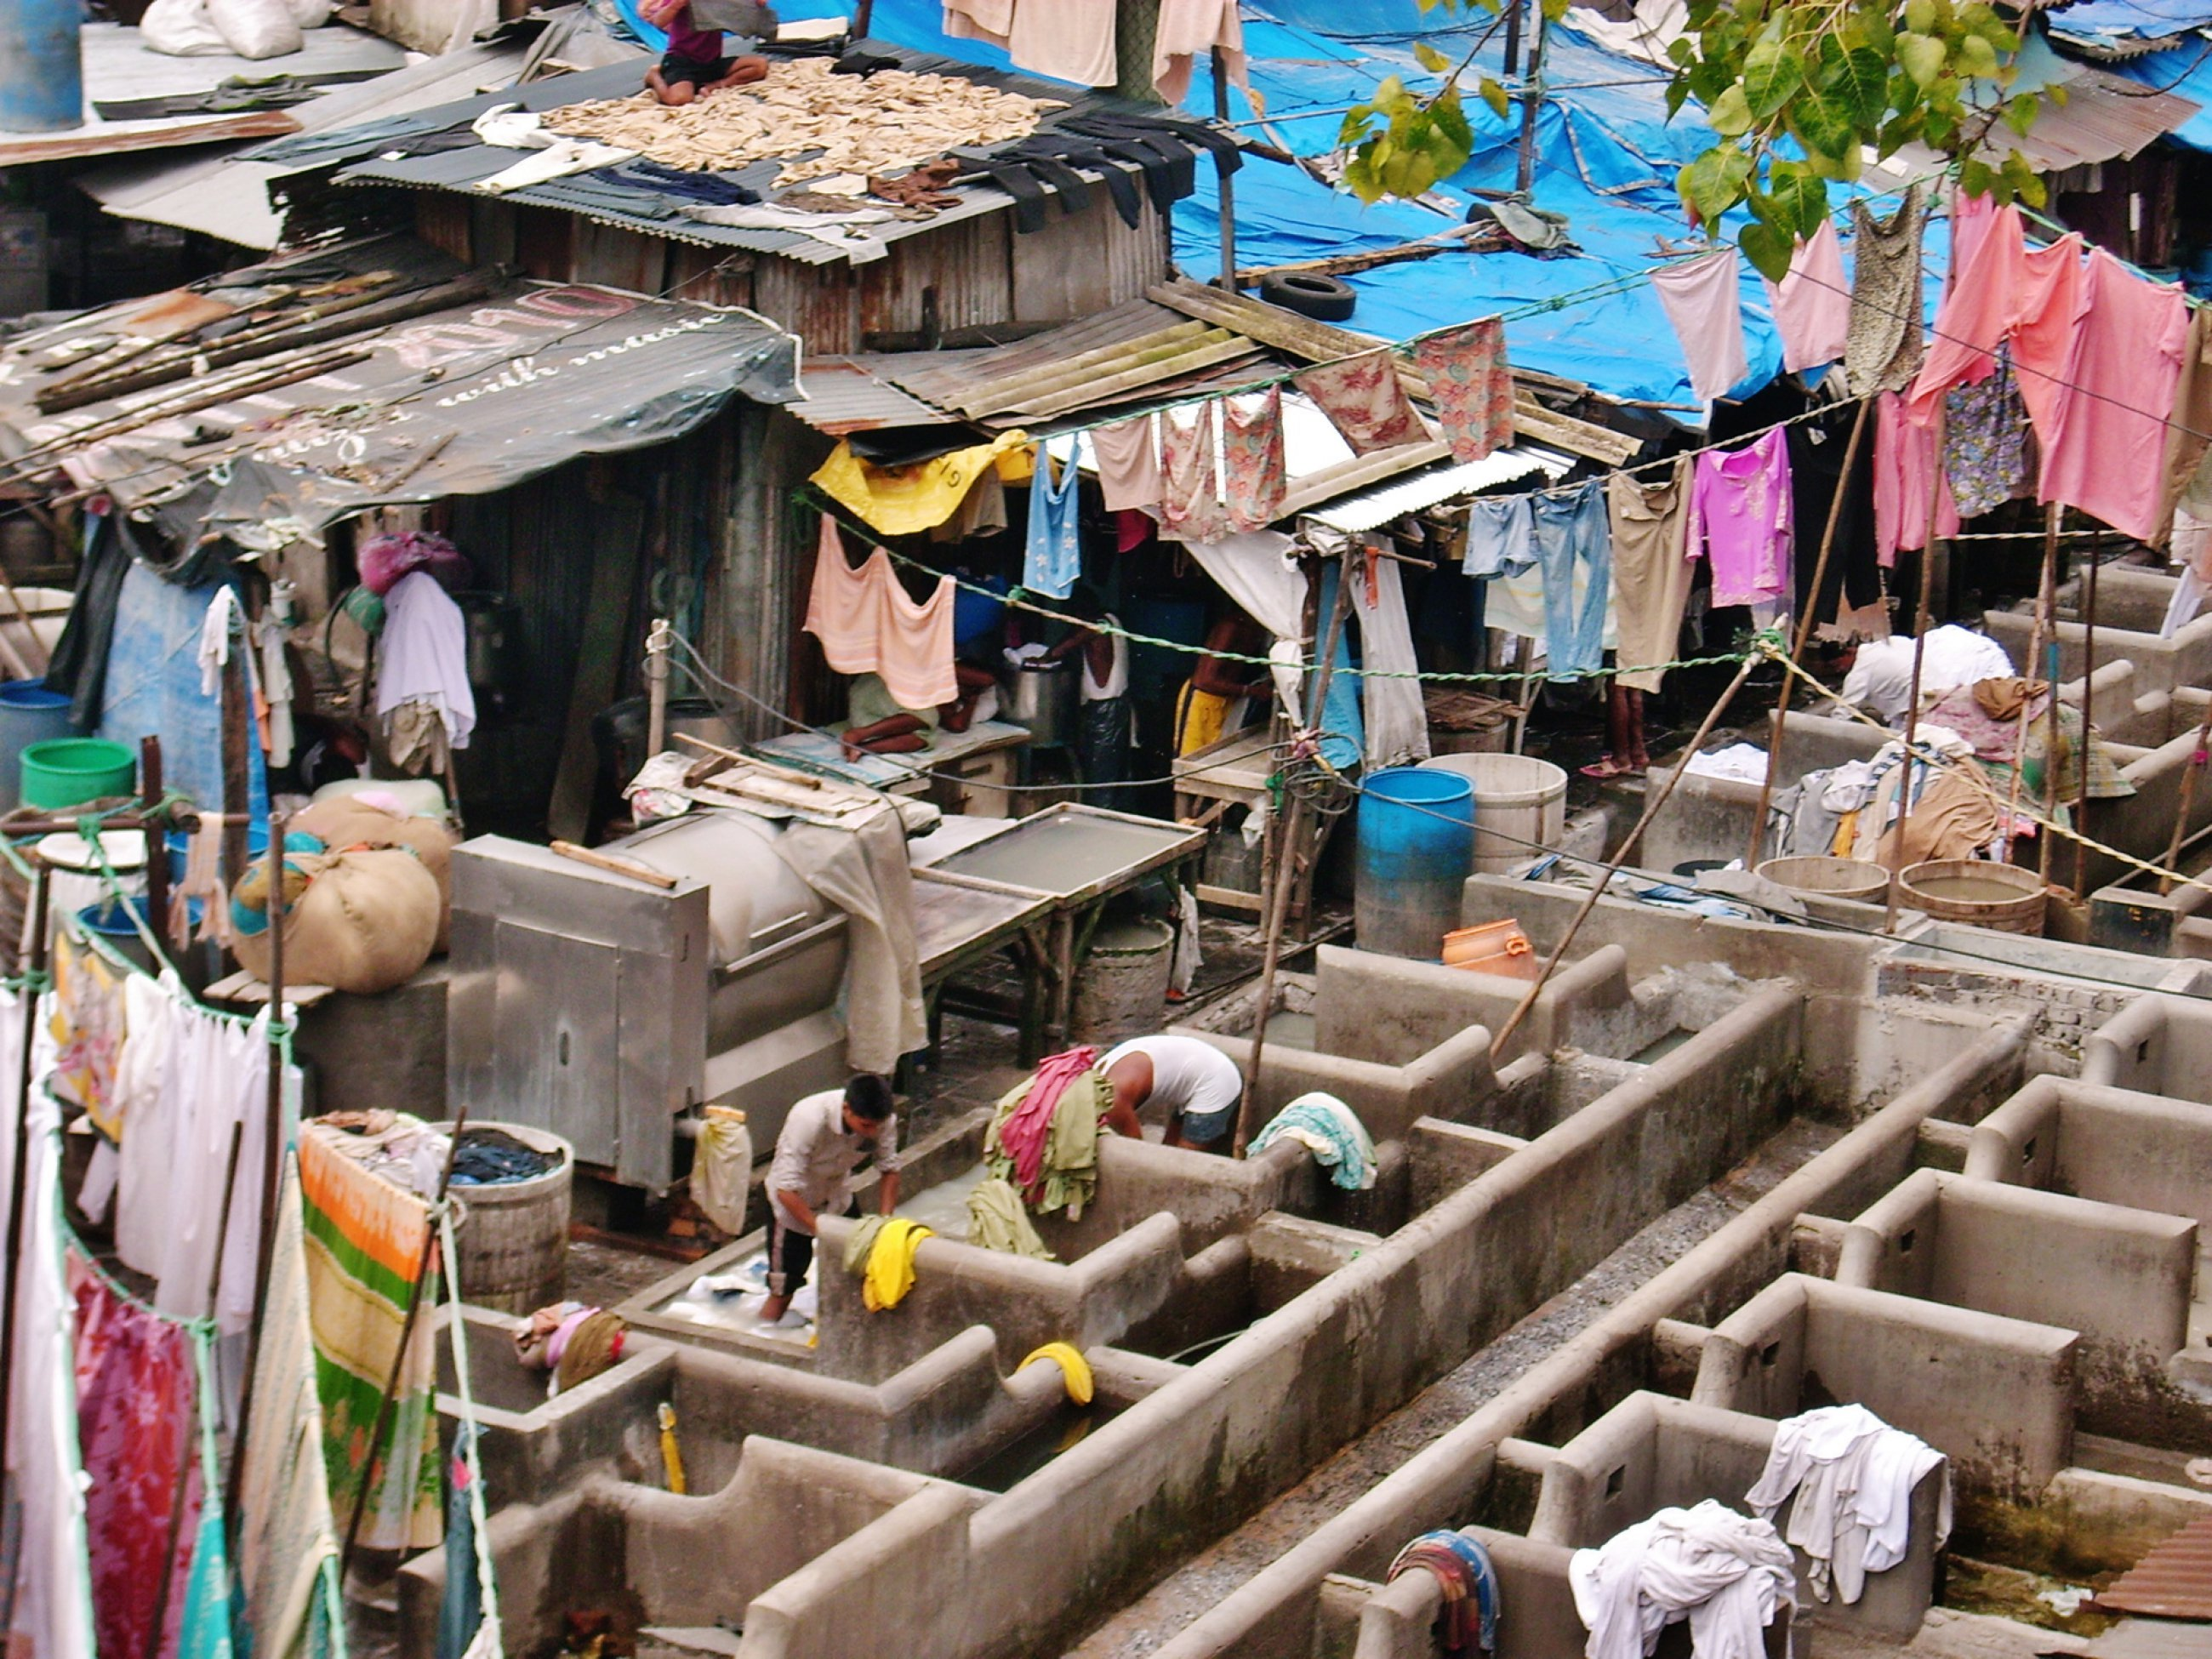 https://bubo.sk/uploads/galleries/4917/bombaj-dhobi-ghat12.jpg